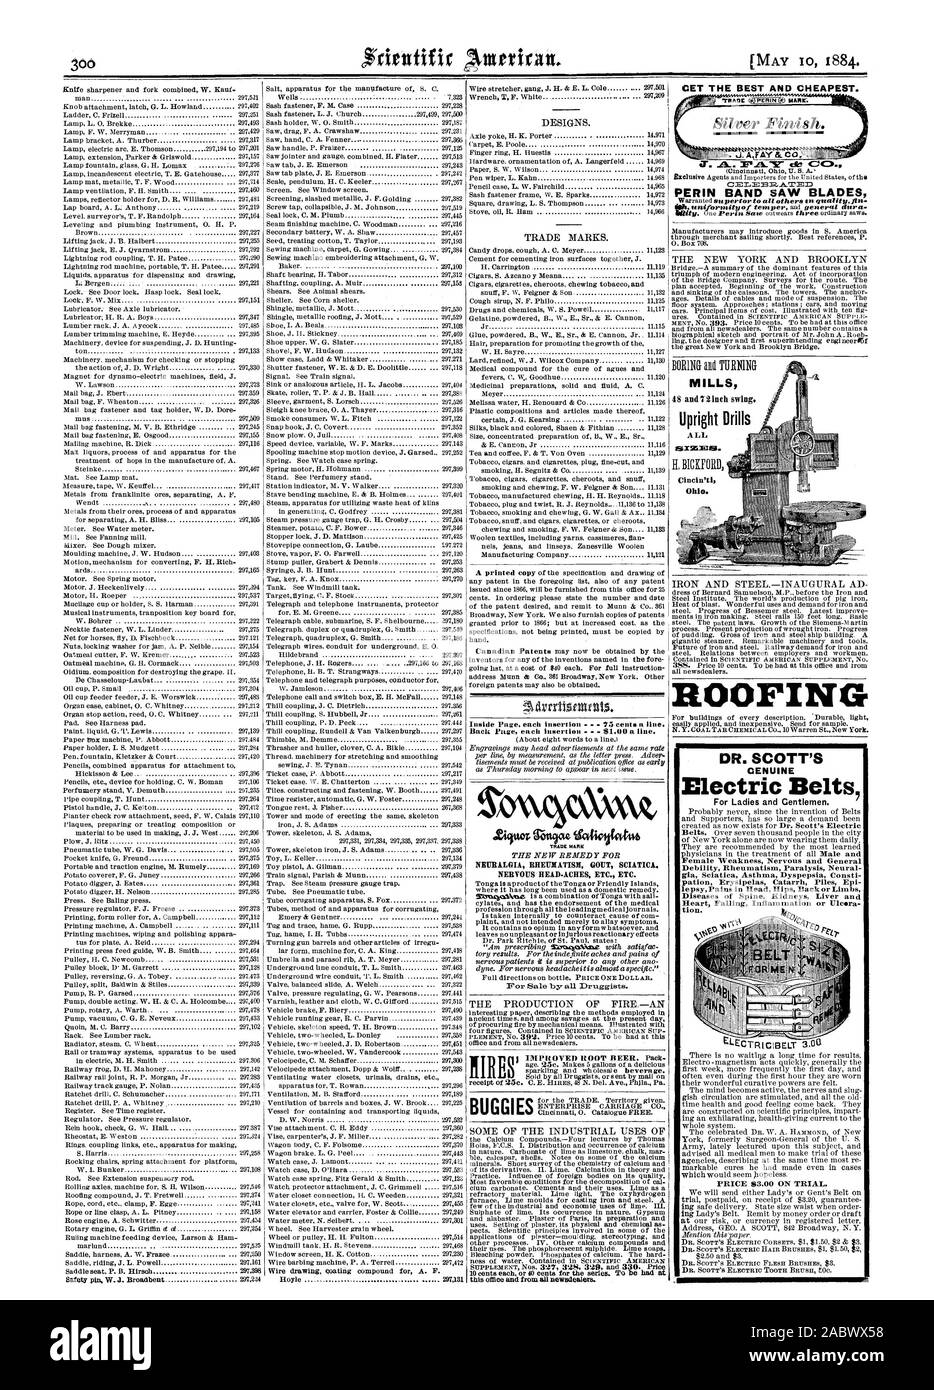 75 cents a line. Back Page each insertion 91.00 a line. (About eight words to a line.) Zino; Quctae latiforotti NETBALGIA RHEUMATISM GOUT SCIATICA. NERVOUS HEAD-ACHES ETC. ETC. For Sale by all Druggists. CET THE BEST AND CHEAPEST. CET.)=1333.A.TED PERIN BAND SAW BLADES ROOFING MILLS Upright Drills MIMEOS Cincin'ti Ohio. DR. SCOTT'S GENUINE Electric Belts For Ladies and Gentlemen. Female Weakness Nervous and General Debility Rheumatism Paralysis Neural gia Sciatica Asthma:Dyspepsia Consti pation Erysipelas Catarrh Piles Epi lepsy Pains in Head Hips Back or Limbs Diseases of Spine Kidneys Liver Stock Photo